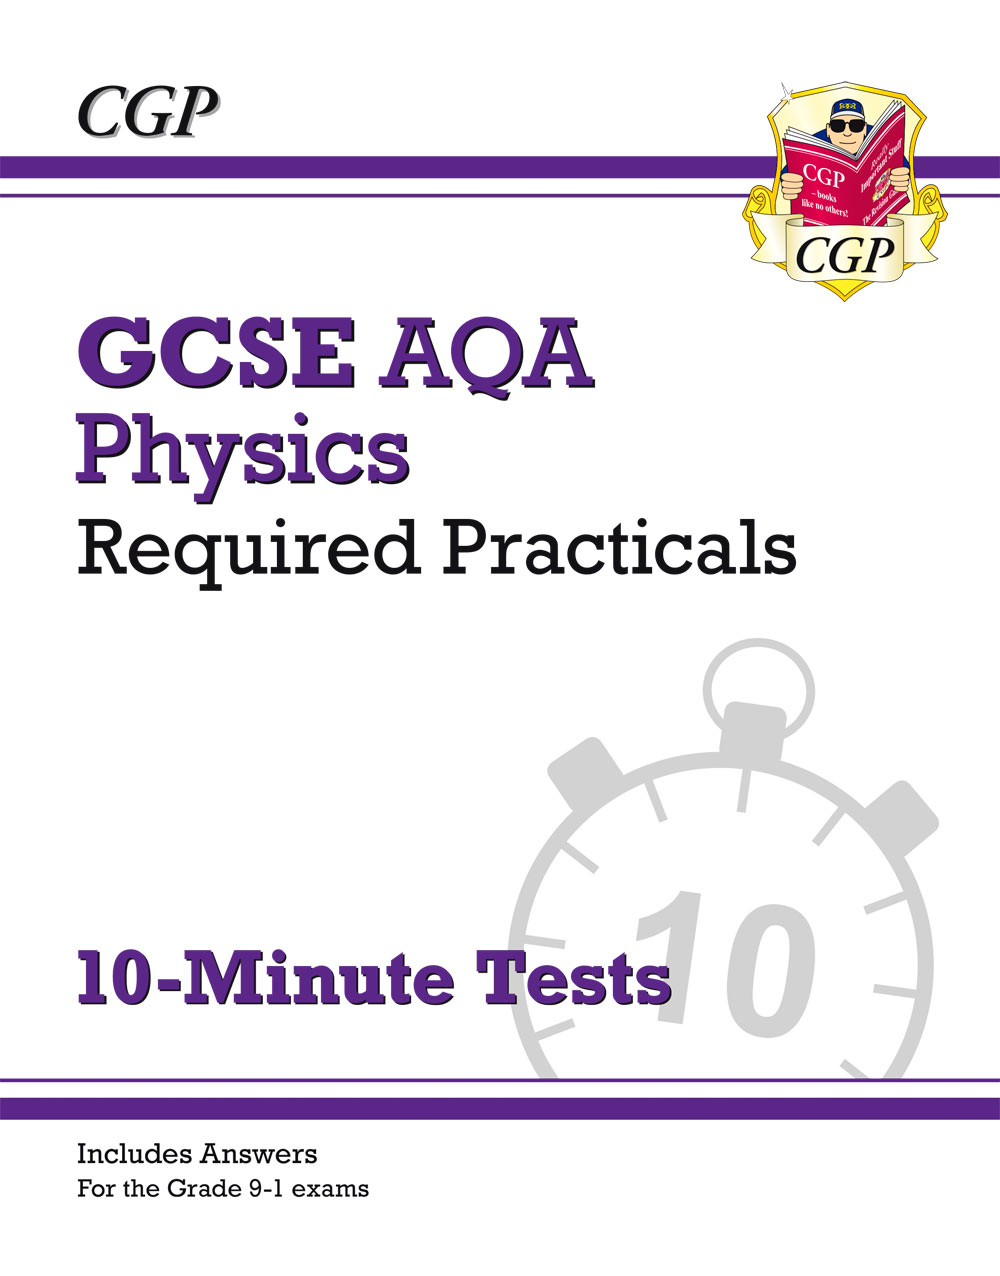 PAPRXP41 - New Grade 9-1 GCSE Physics: AQA Required Practicals 10-Minute Tests (includes Answers)